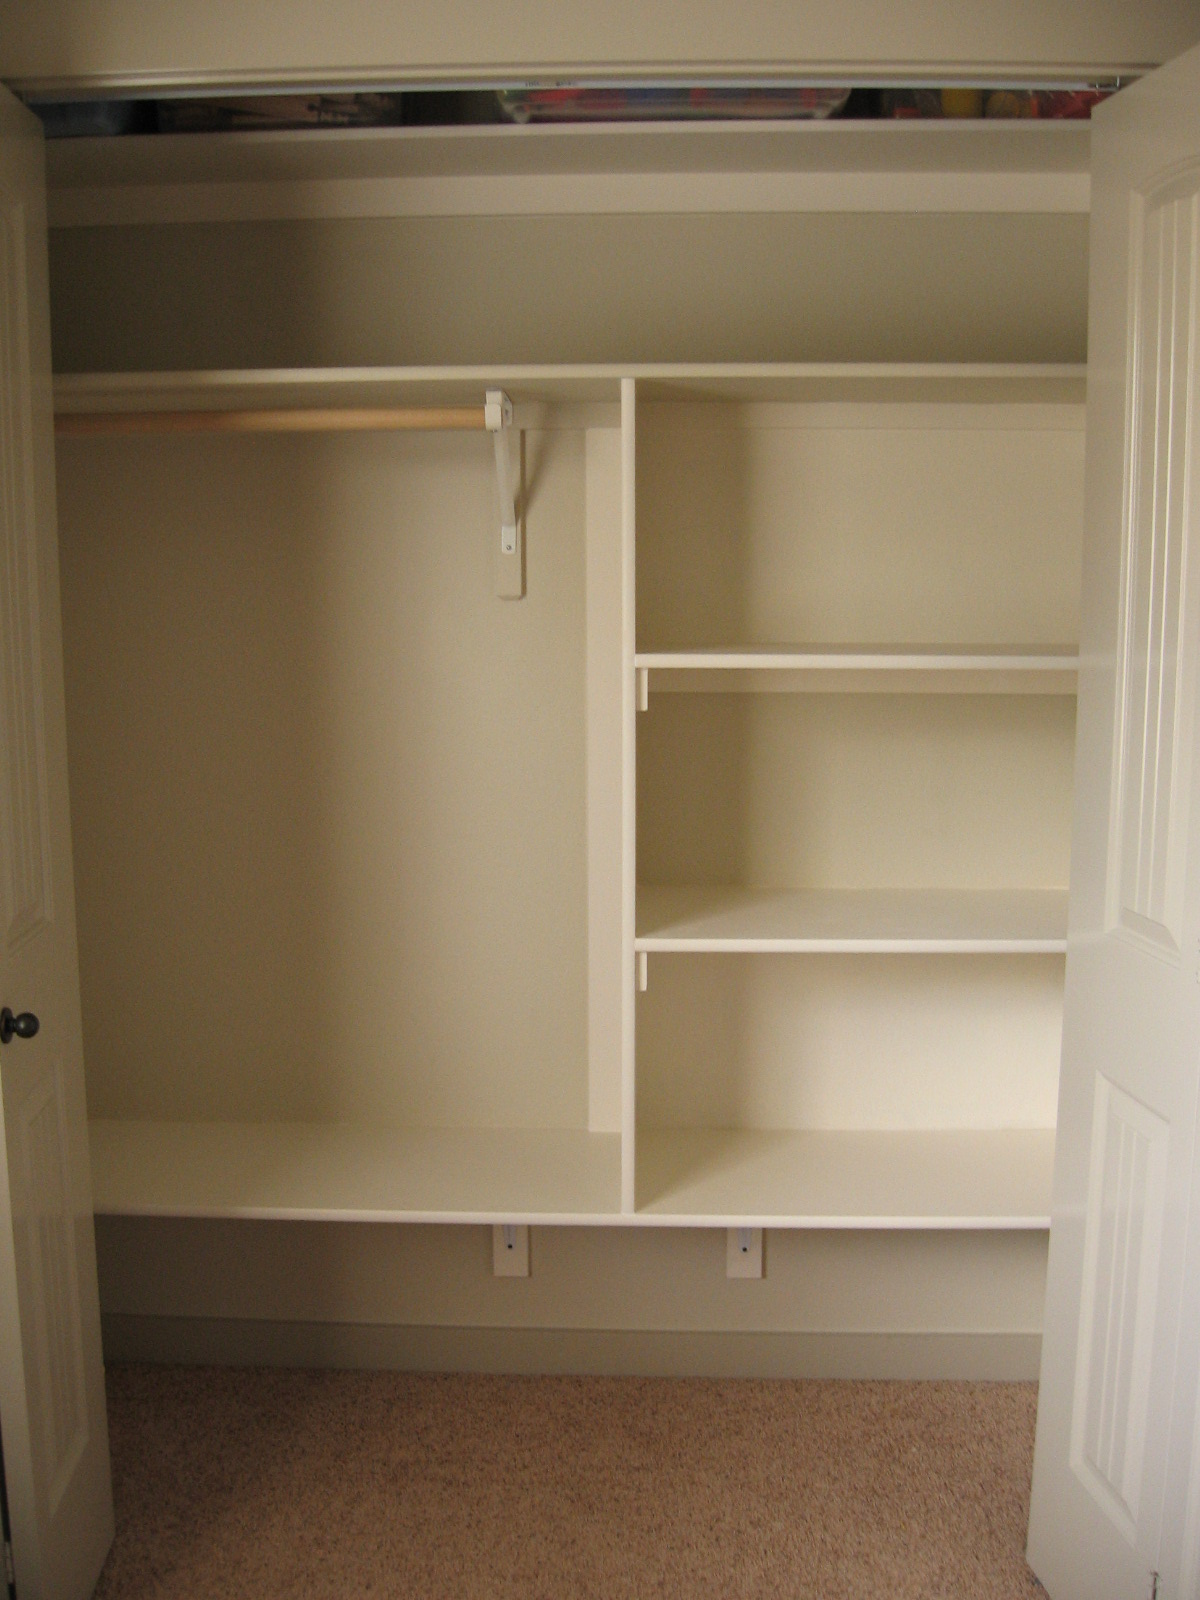 How to Make a Closet Into an Office